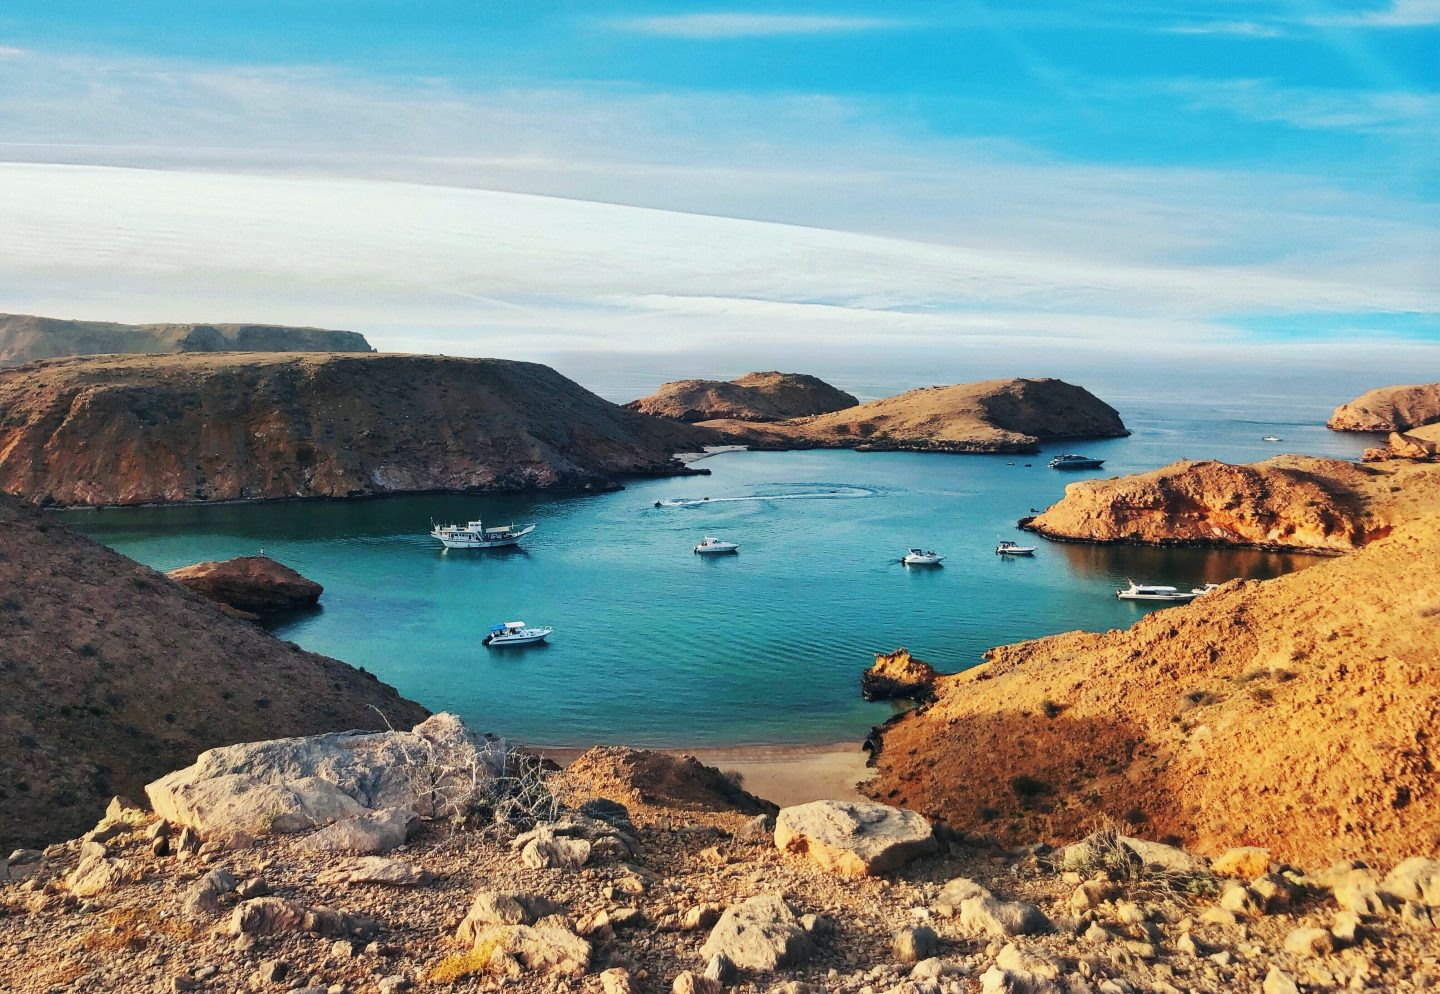 oman travel, view over the bay and rocks in oman